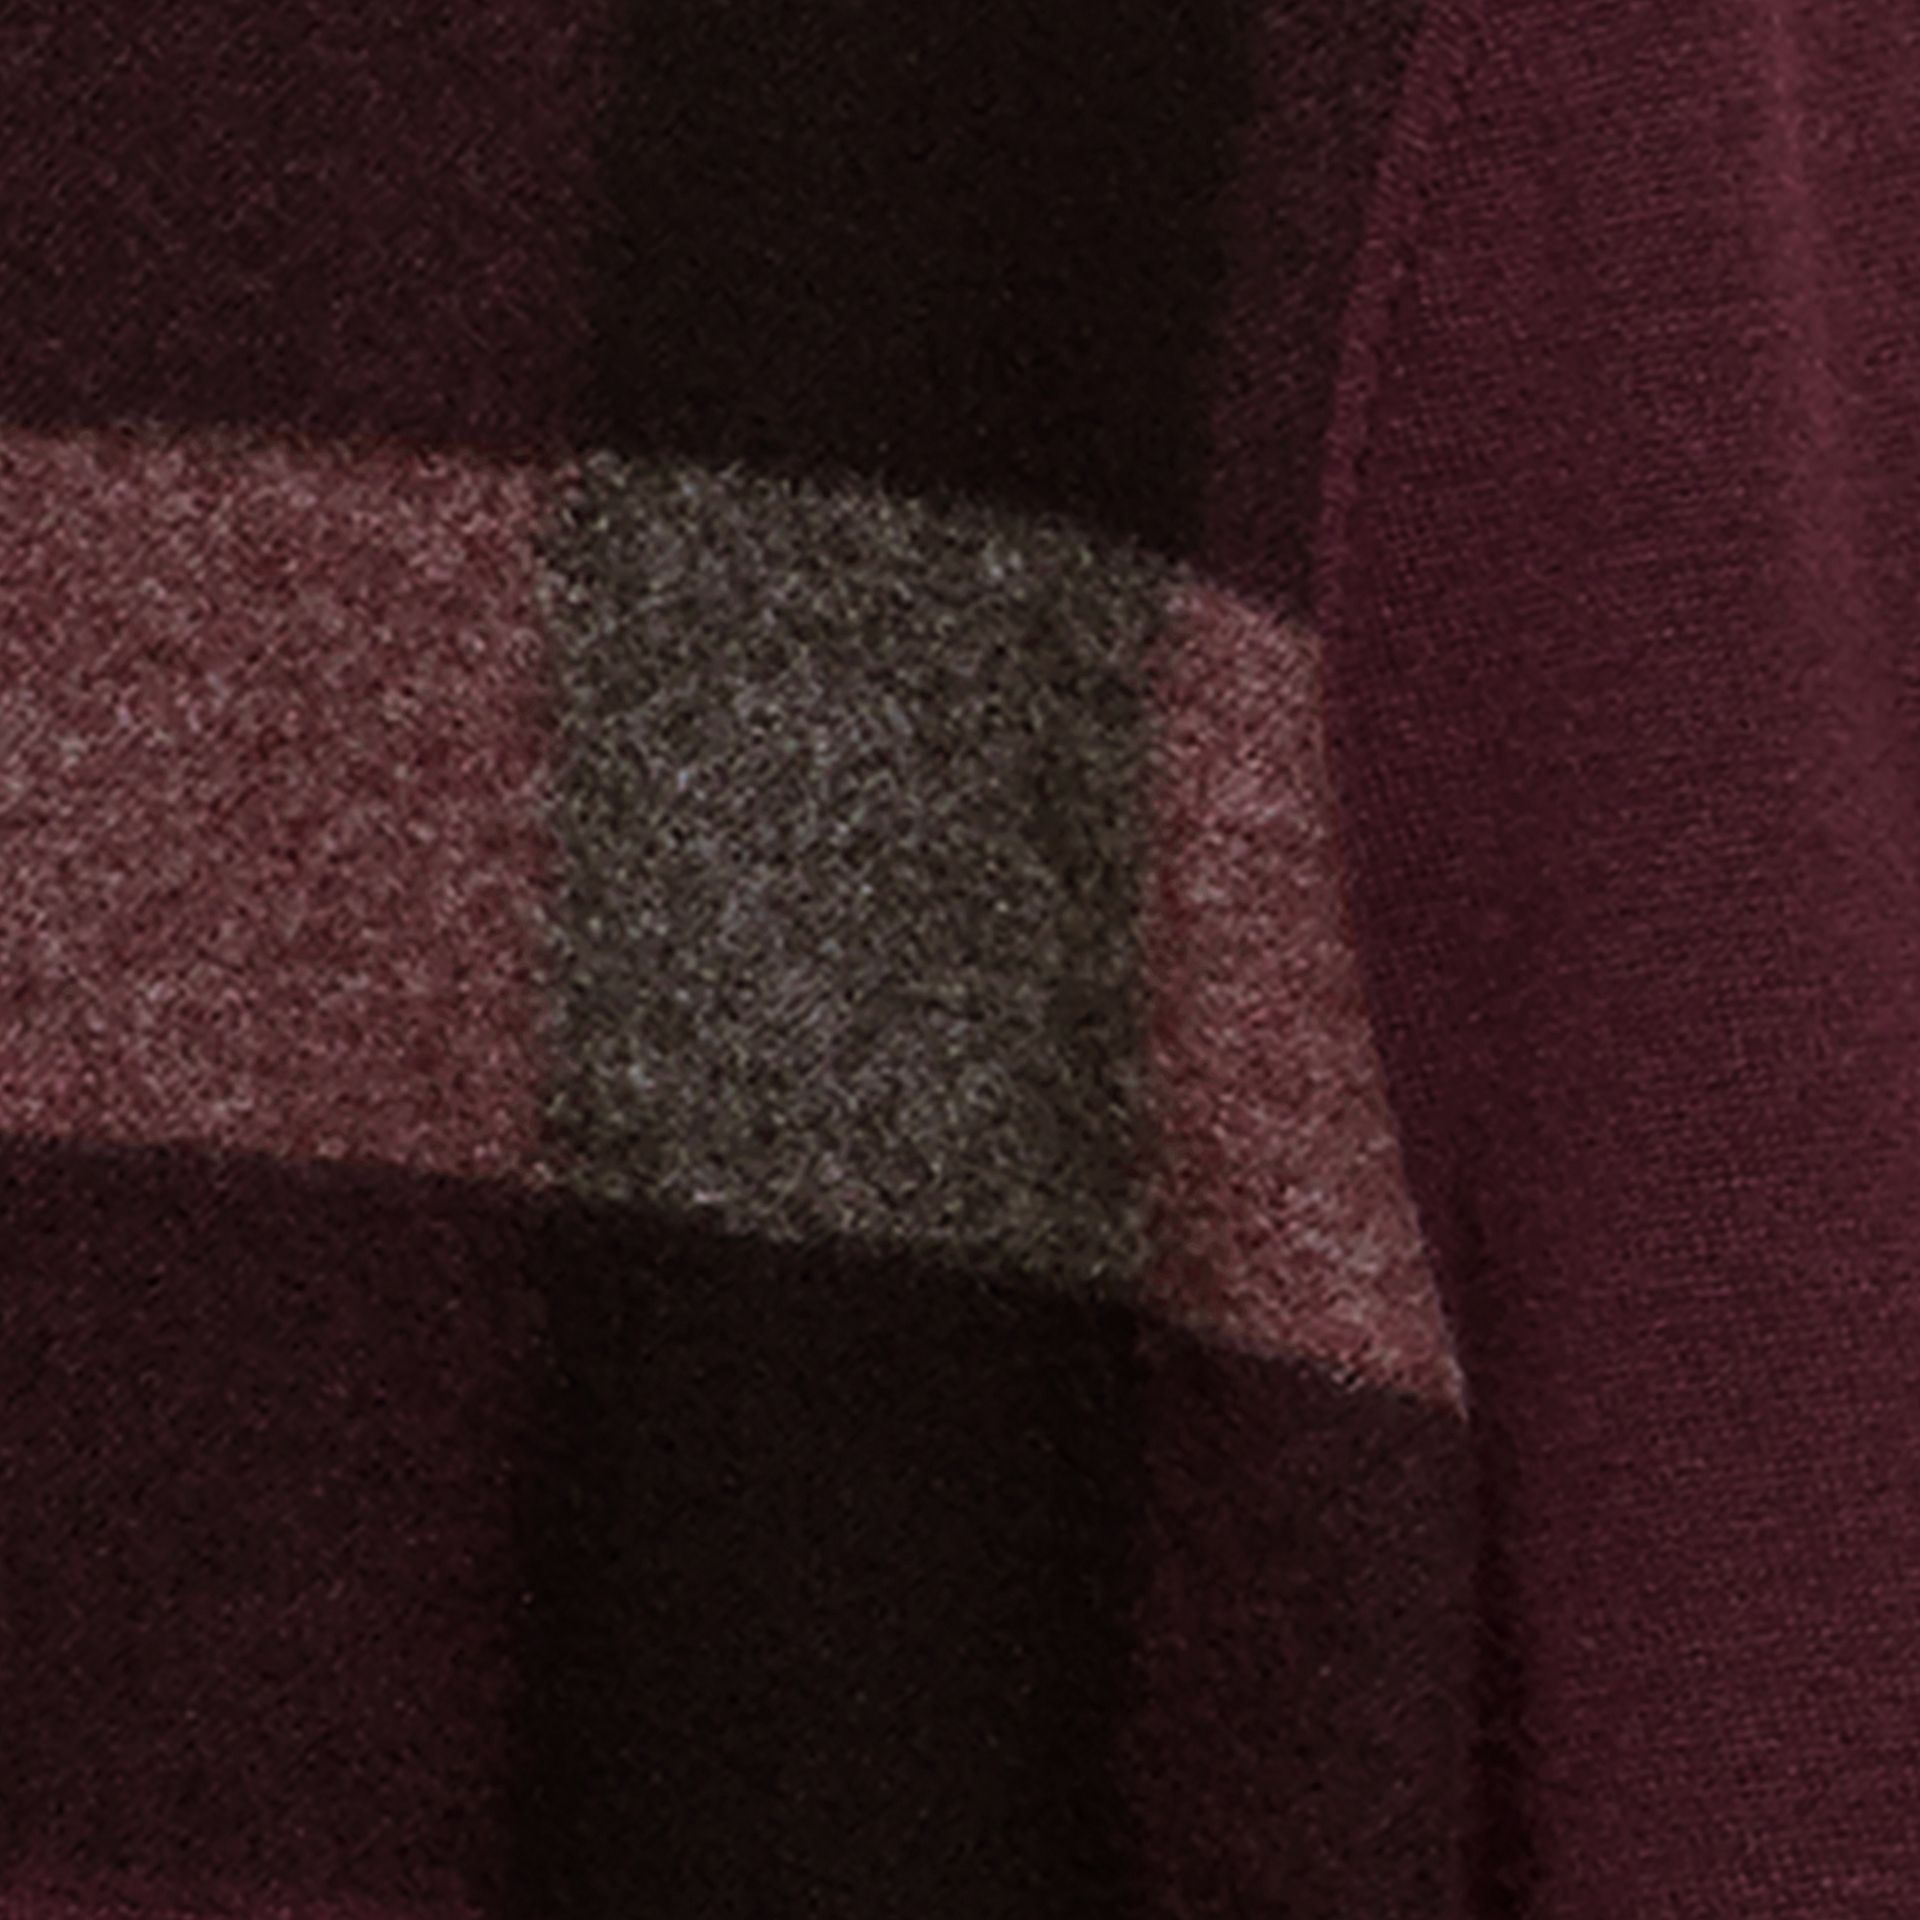 Graphic Check Cashmere Cotton Sweater - gallery image 2